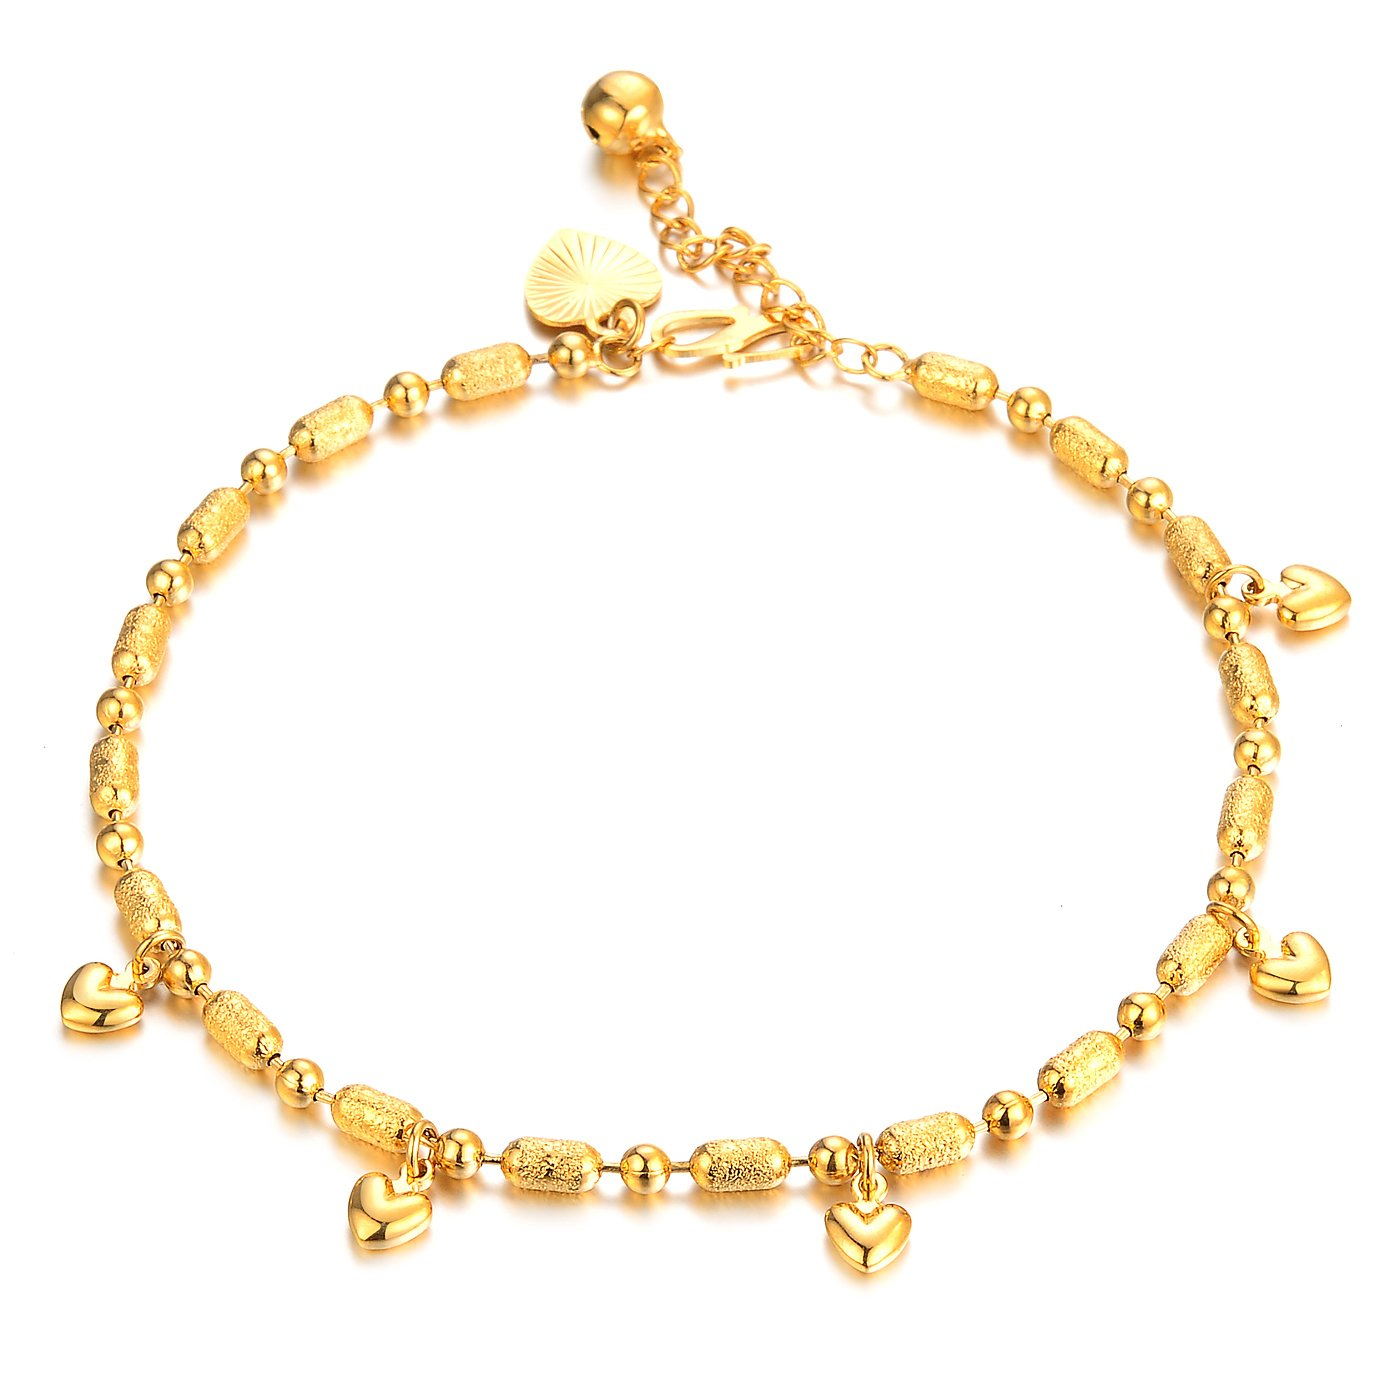 Women's Anklet Bracelet 18k Gold Plated Small Pure and Fresh and Contracted Pendants Foot Chain